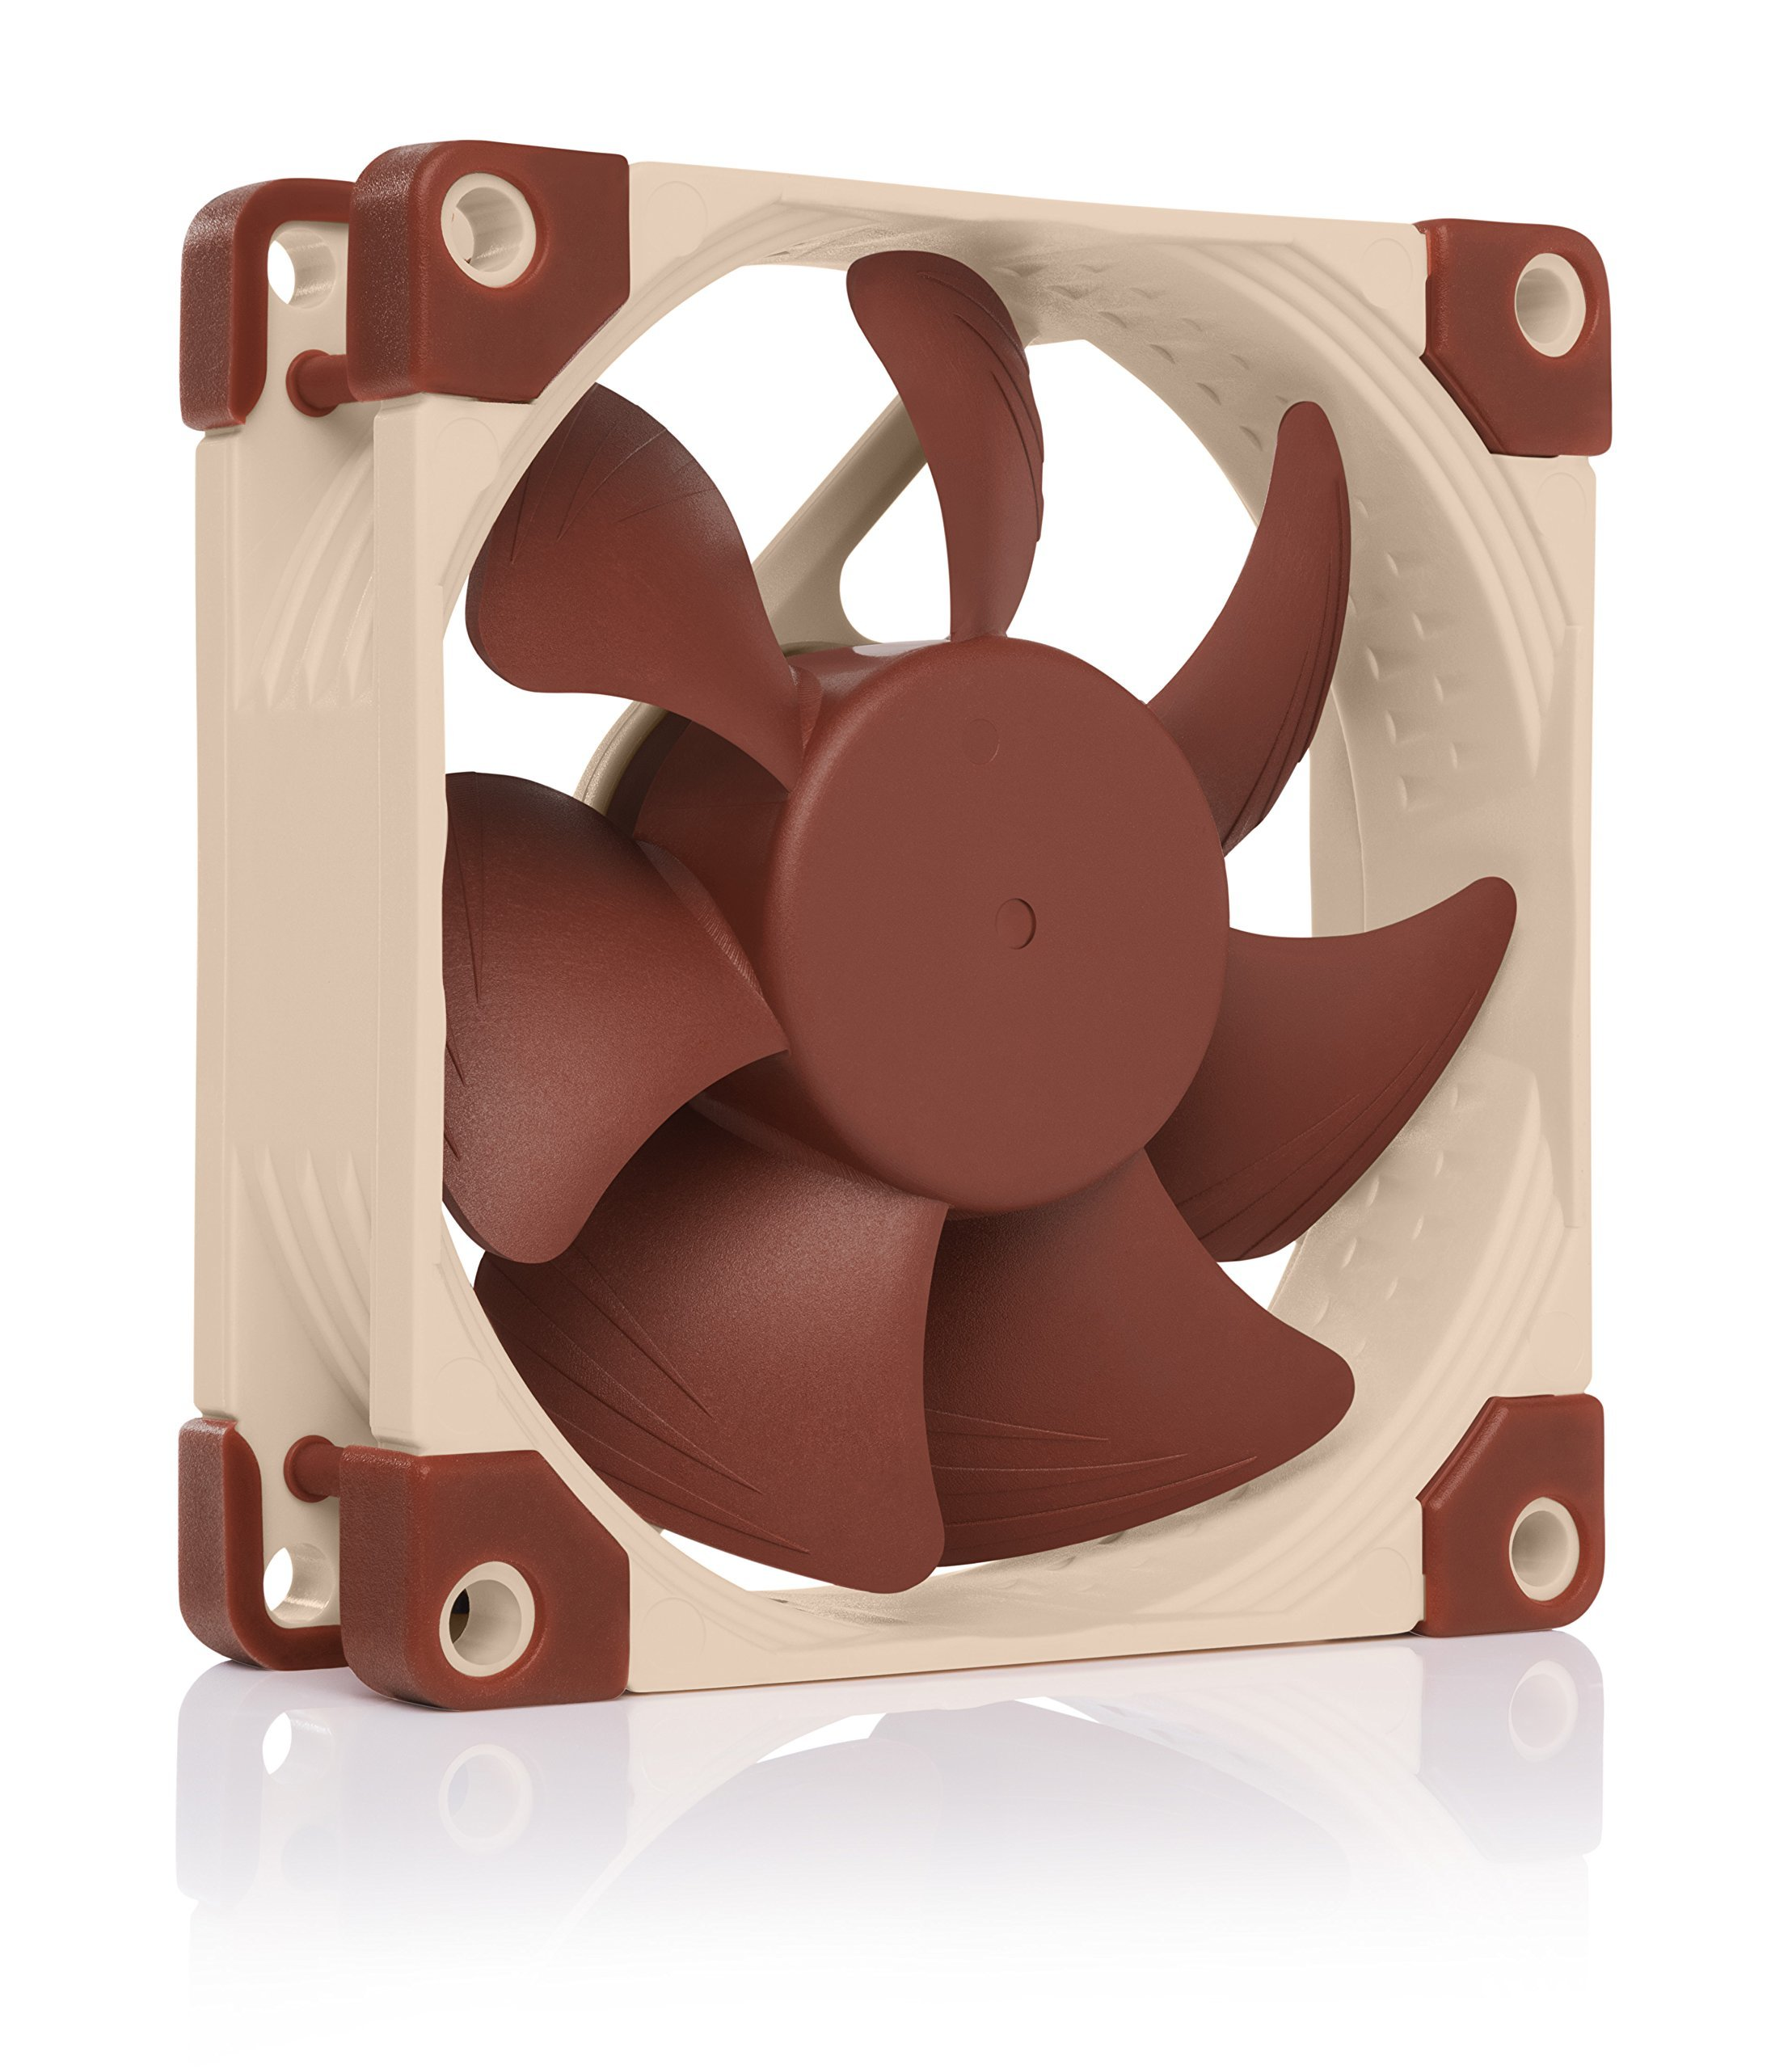 Fan Cooler Noctua Aao Frame Design, Sso2 Bearing Premium Qua